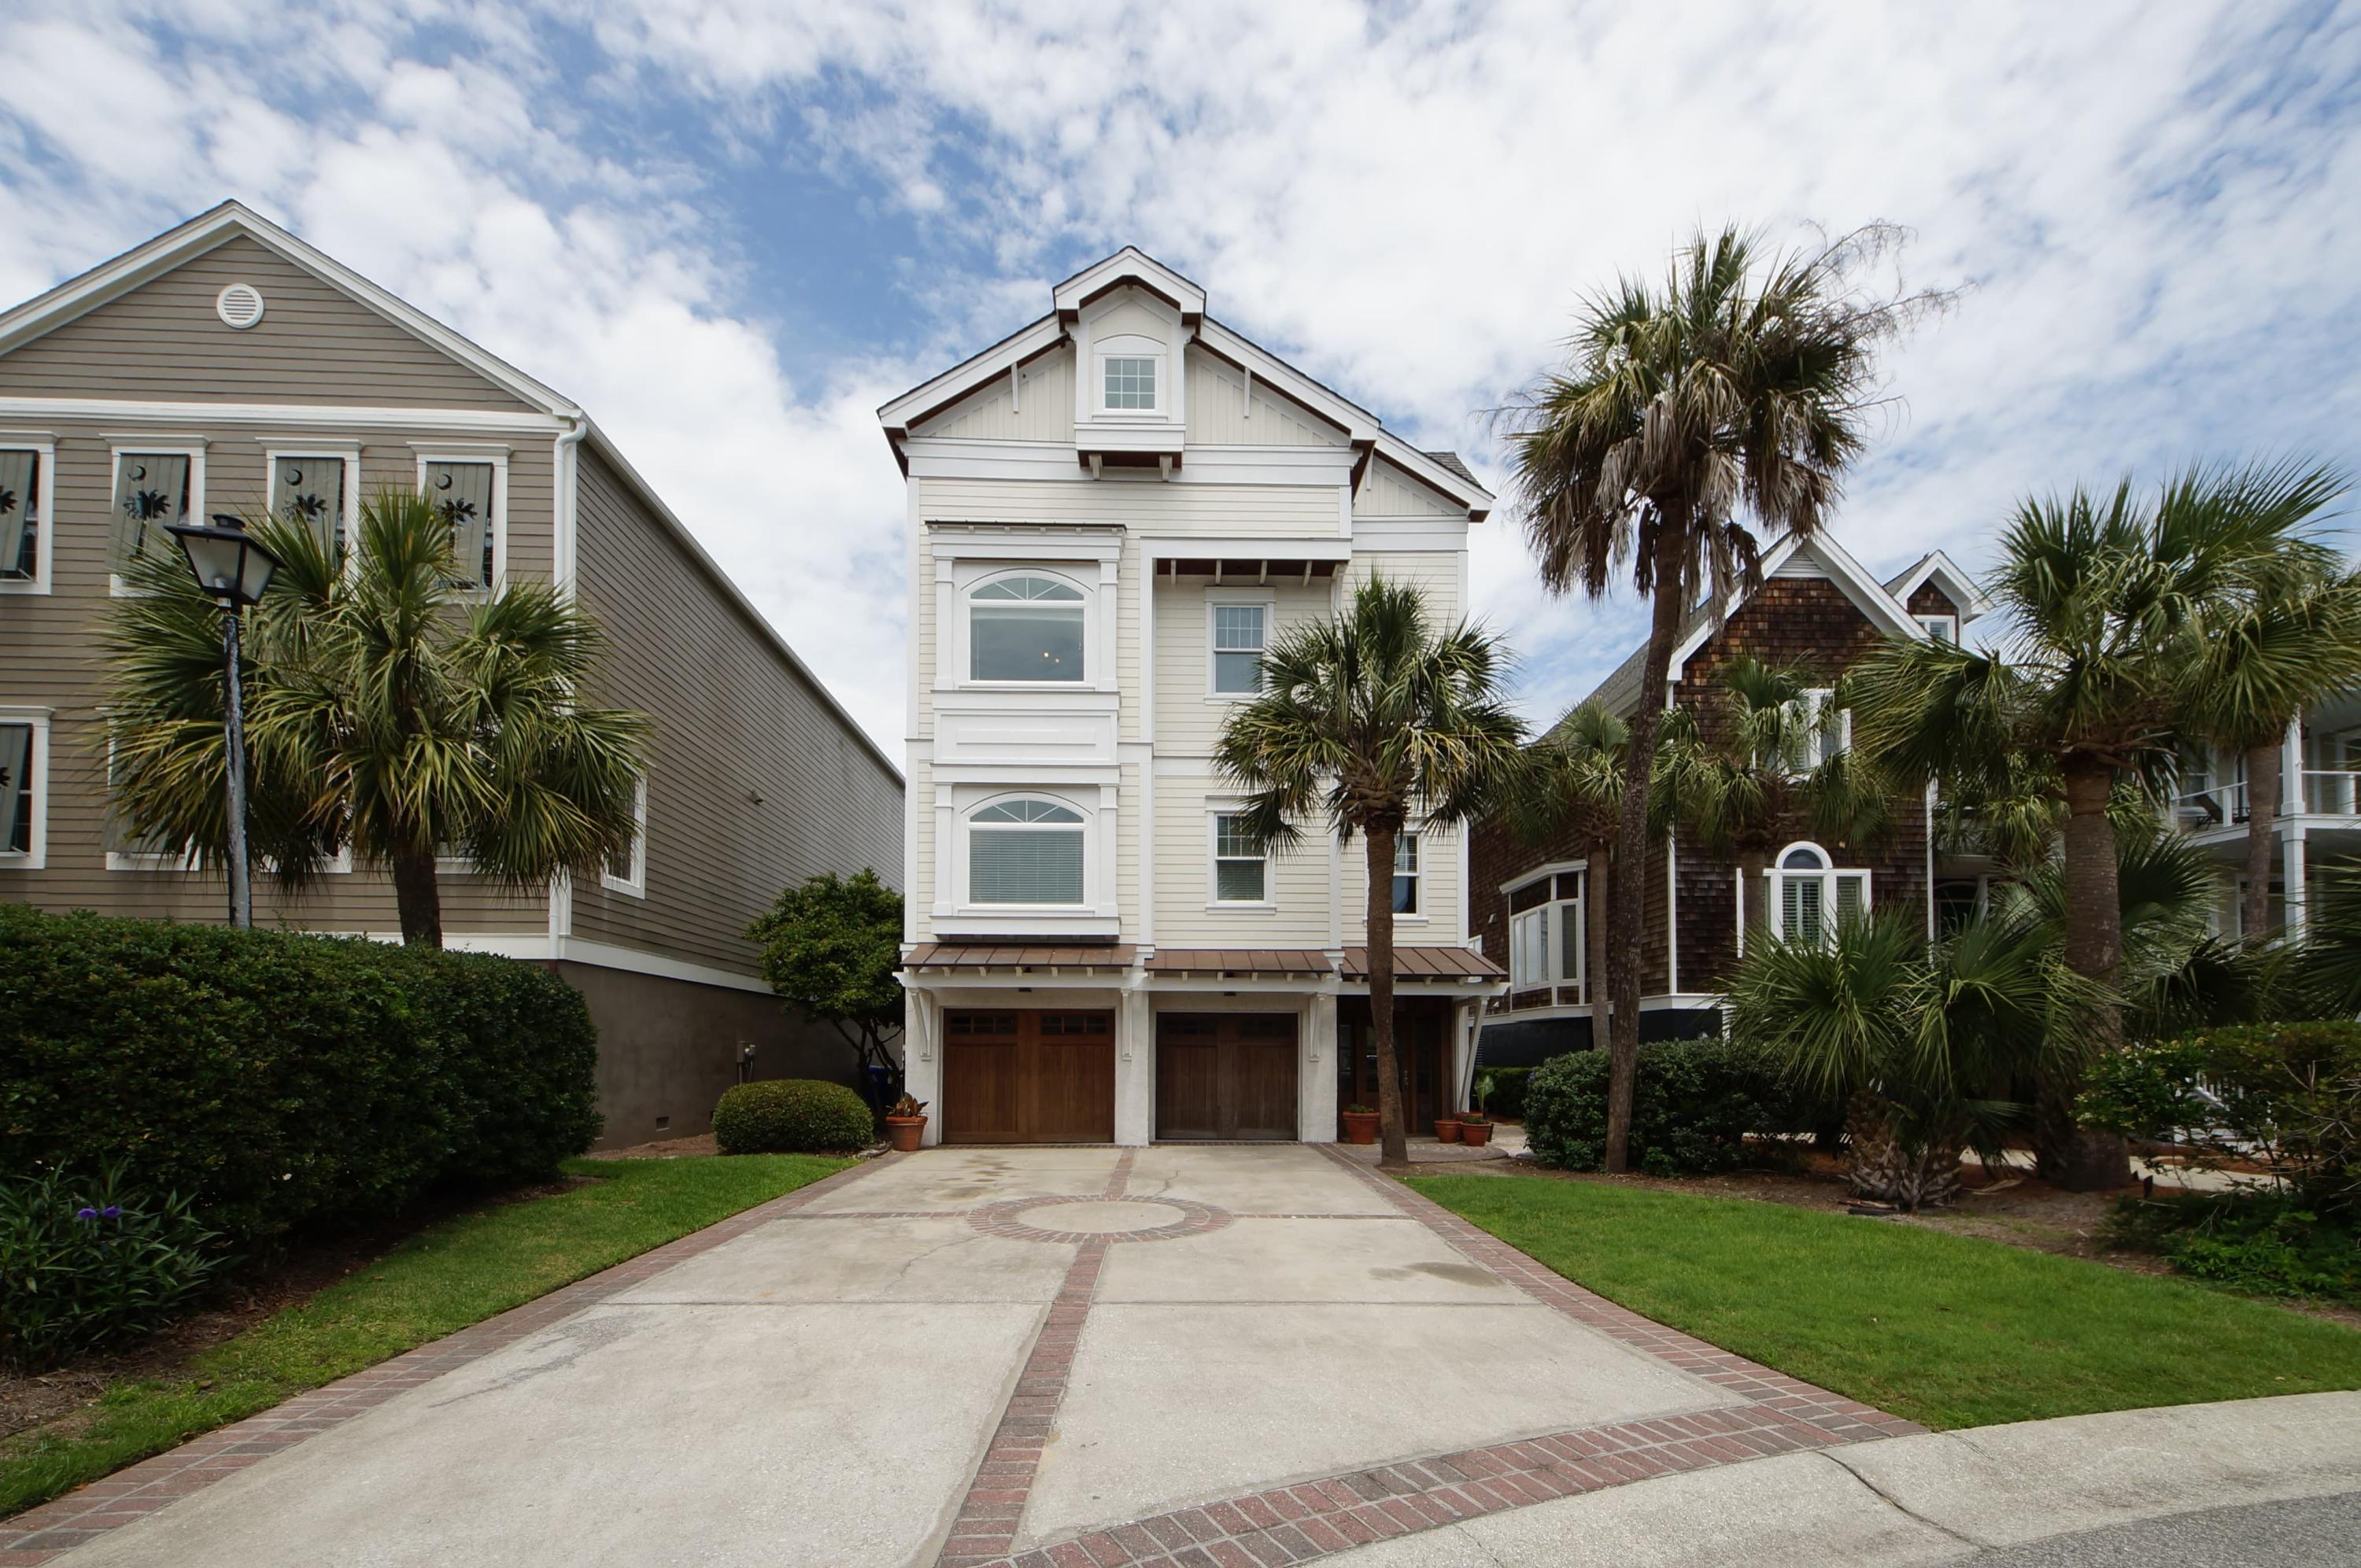 Wild Dunes Homes For Sale - 50 Morgan Place, Isle of Palms, SC - 1